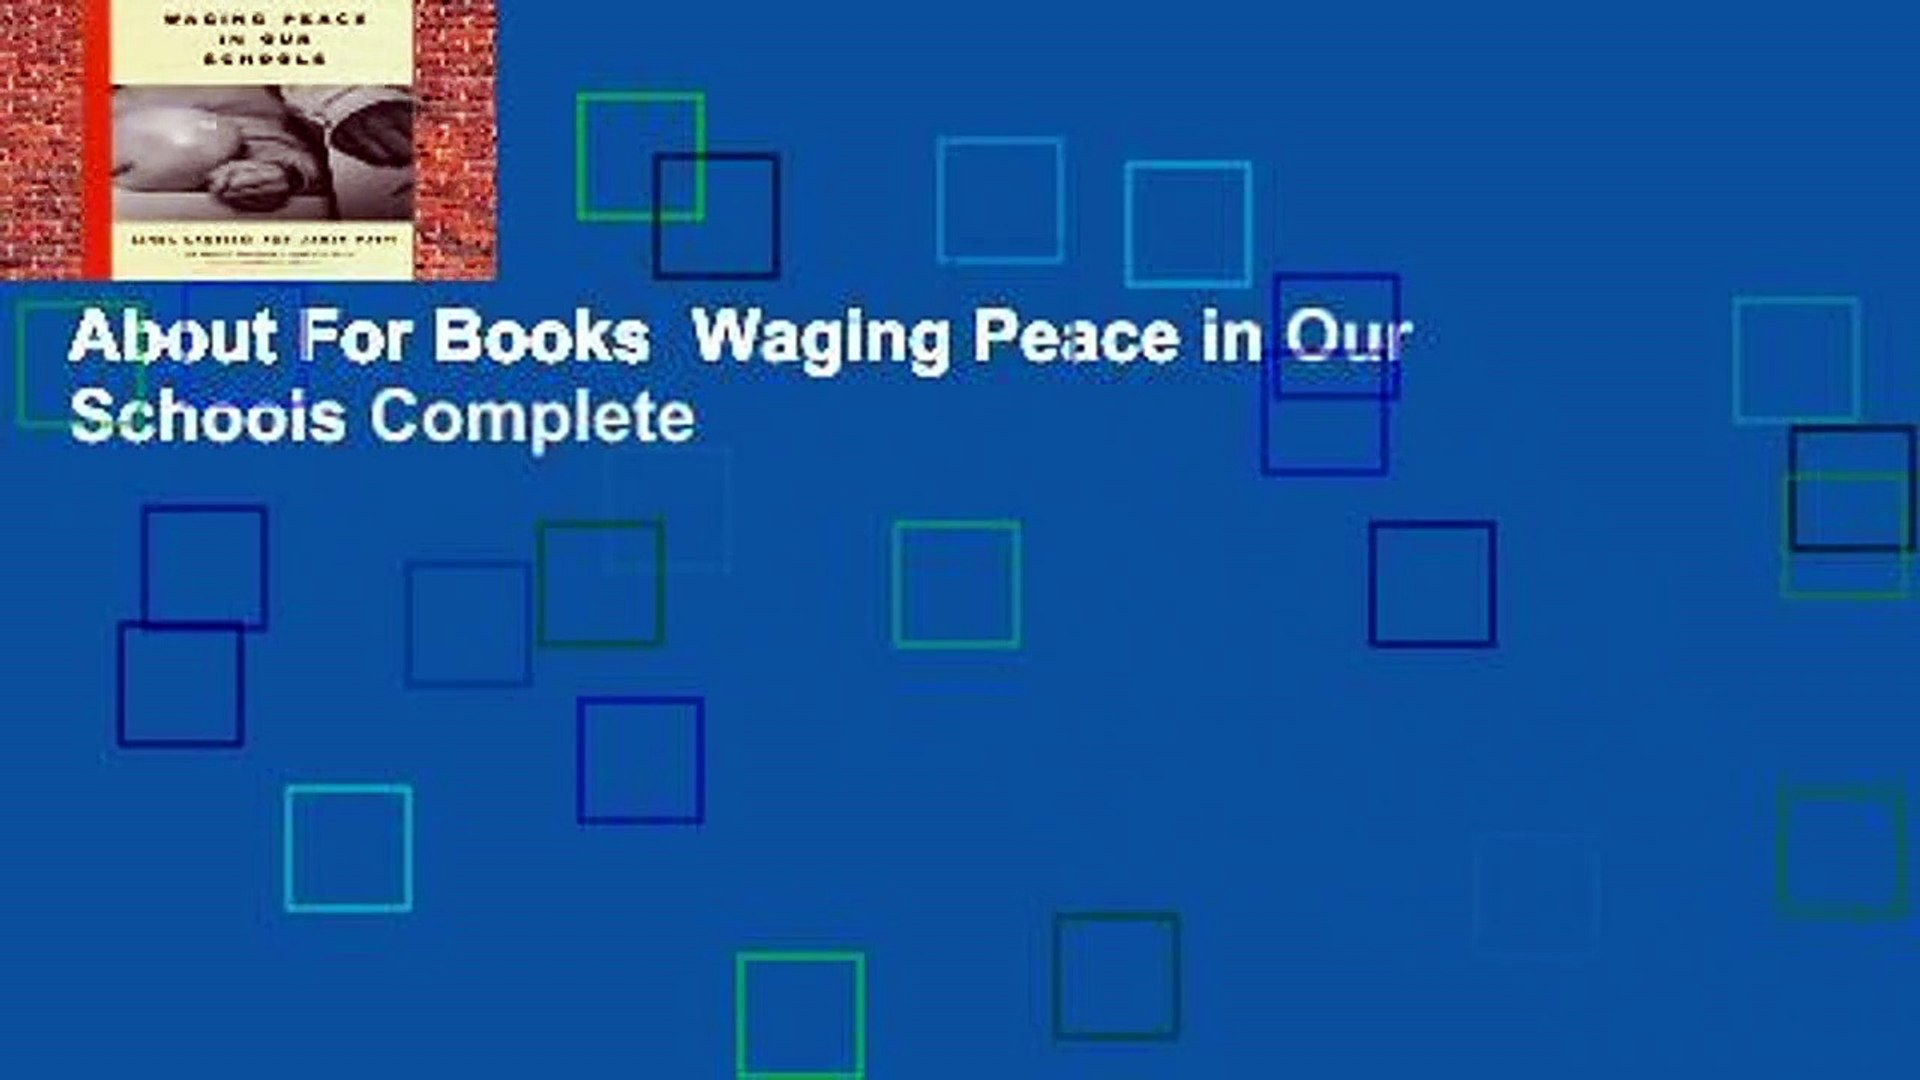 About For Books  Waging Peace in Our Schools Complete